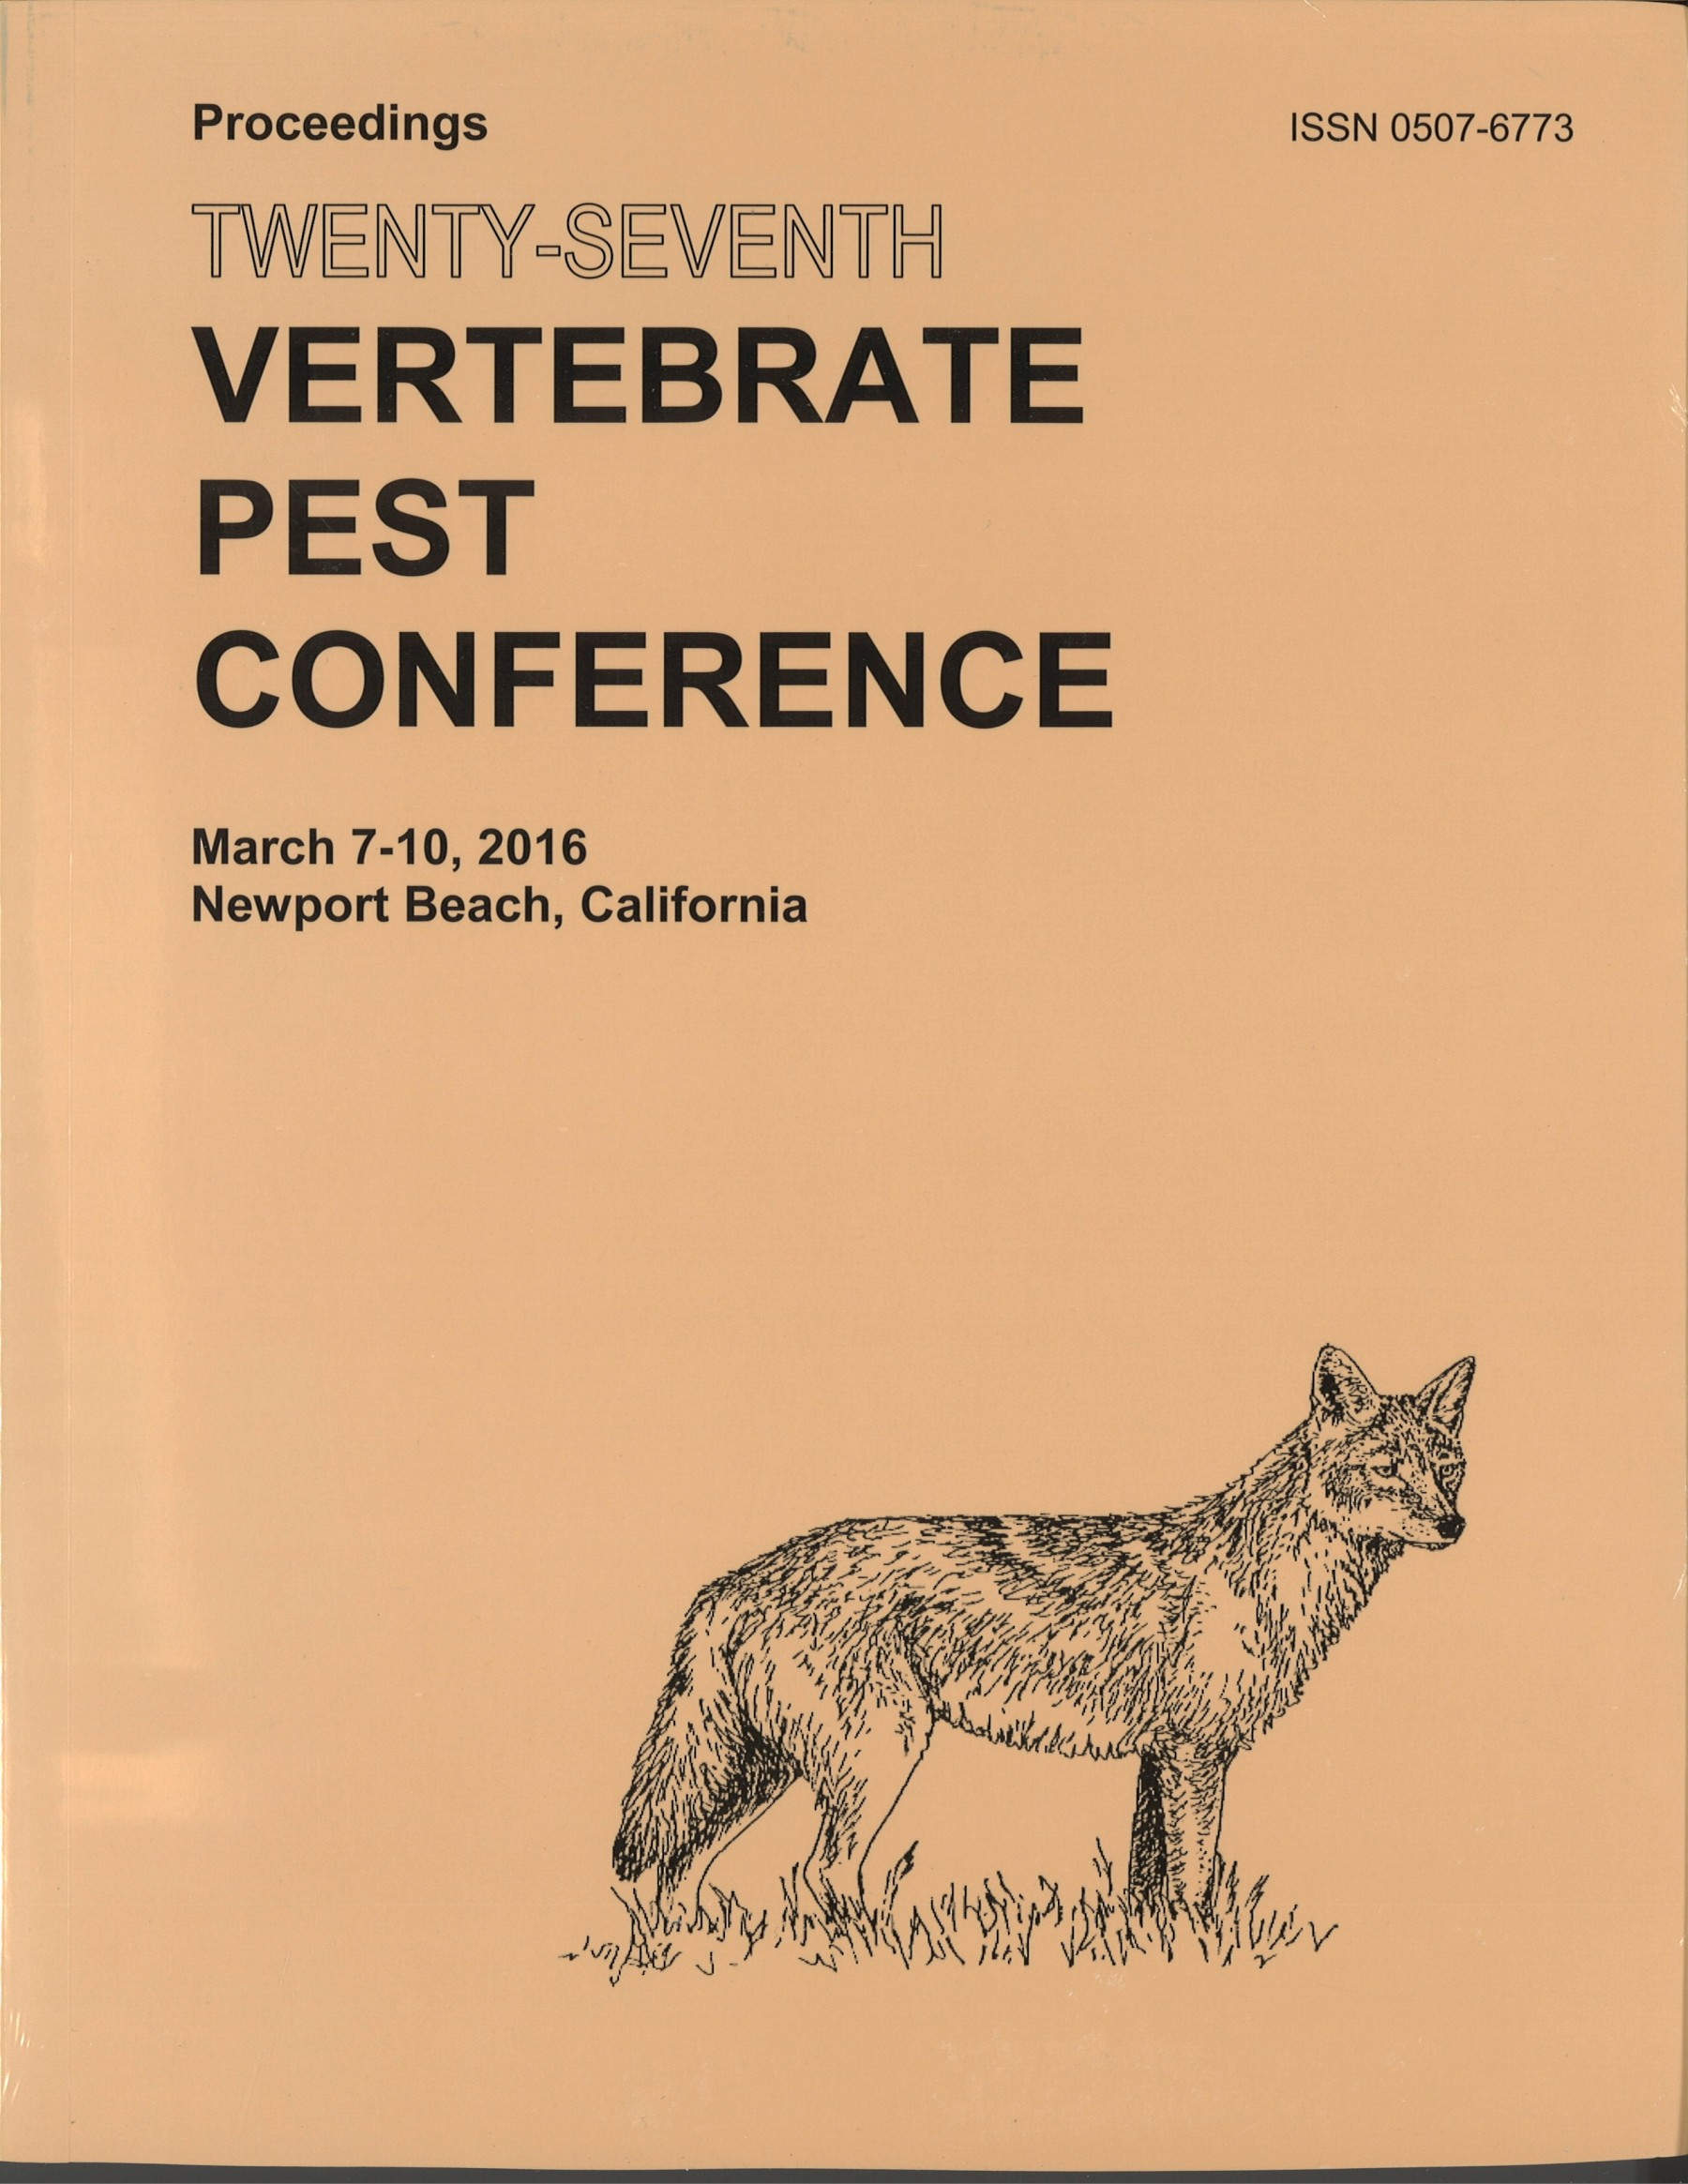 Proceedings of the Twenty-Seventh Vertebrate Pest Conference (VPC-2016)